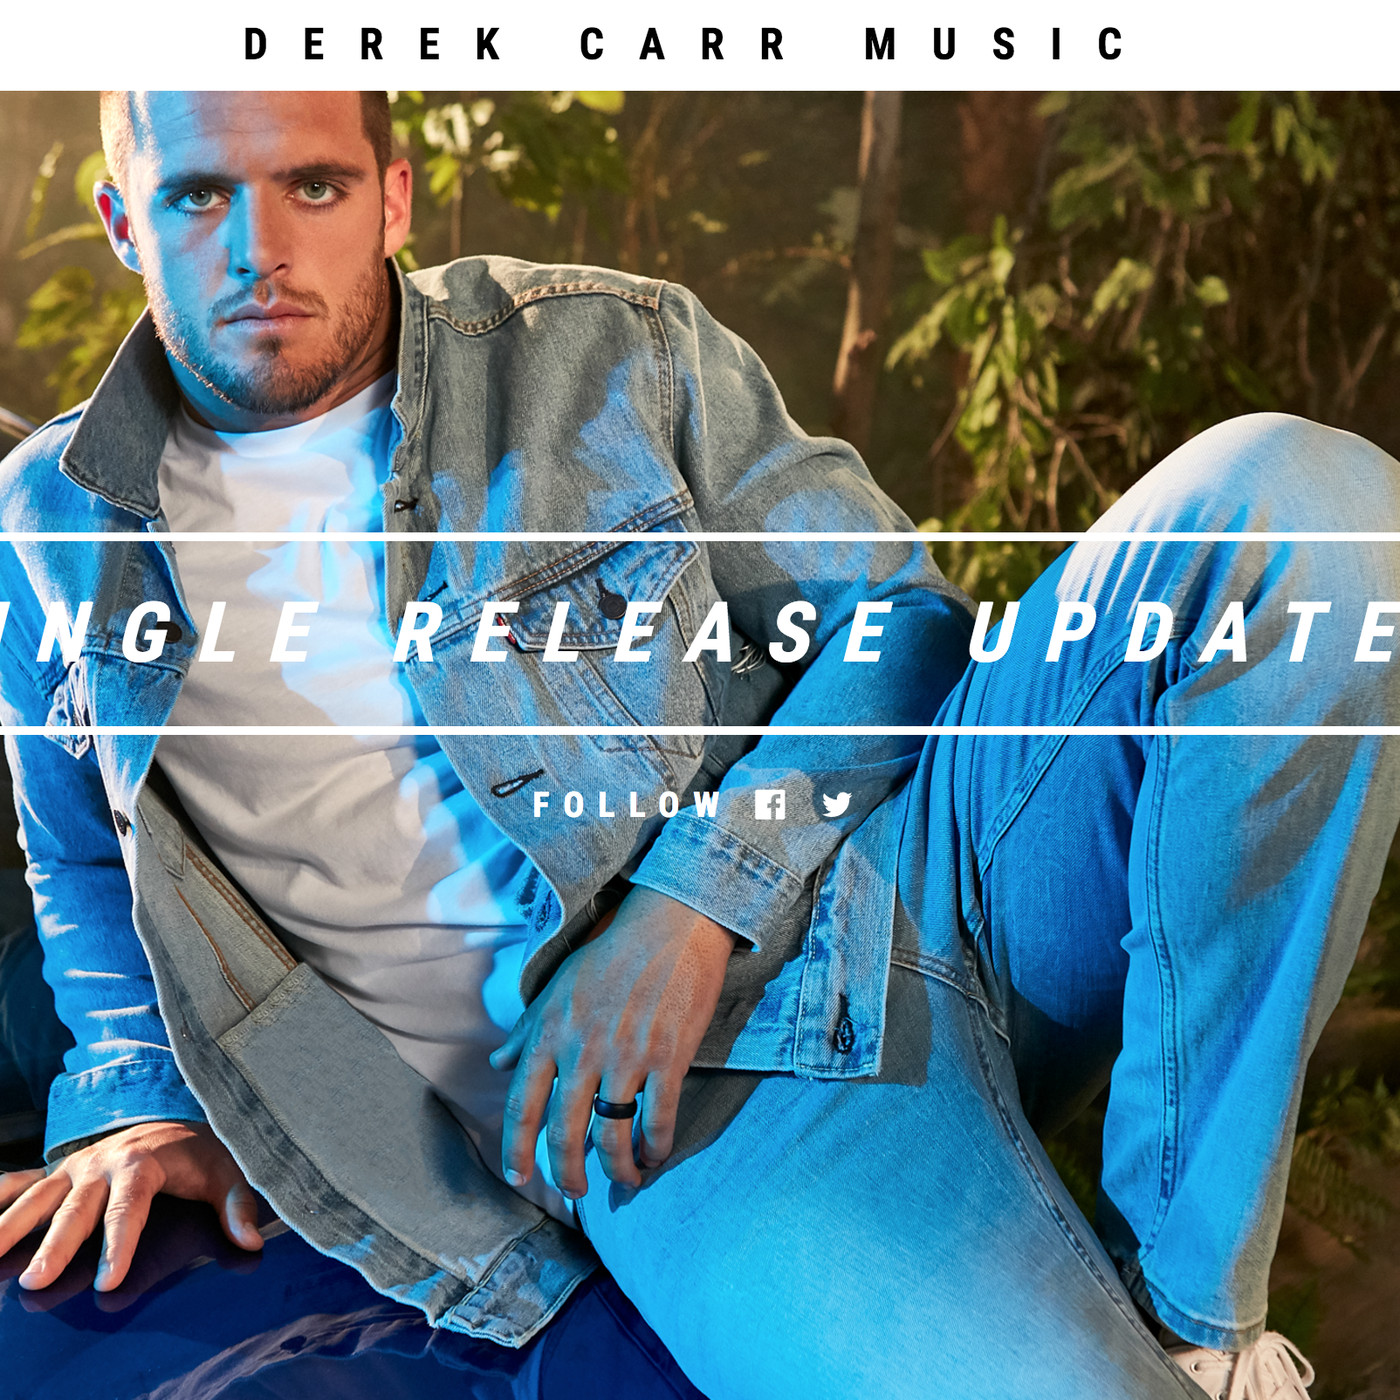 f78917e26 Watch: Derek Carr's music video ad is here - Silver And Black Pride